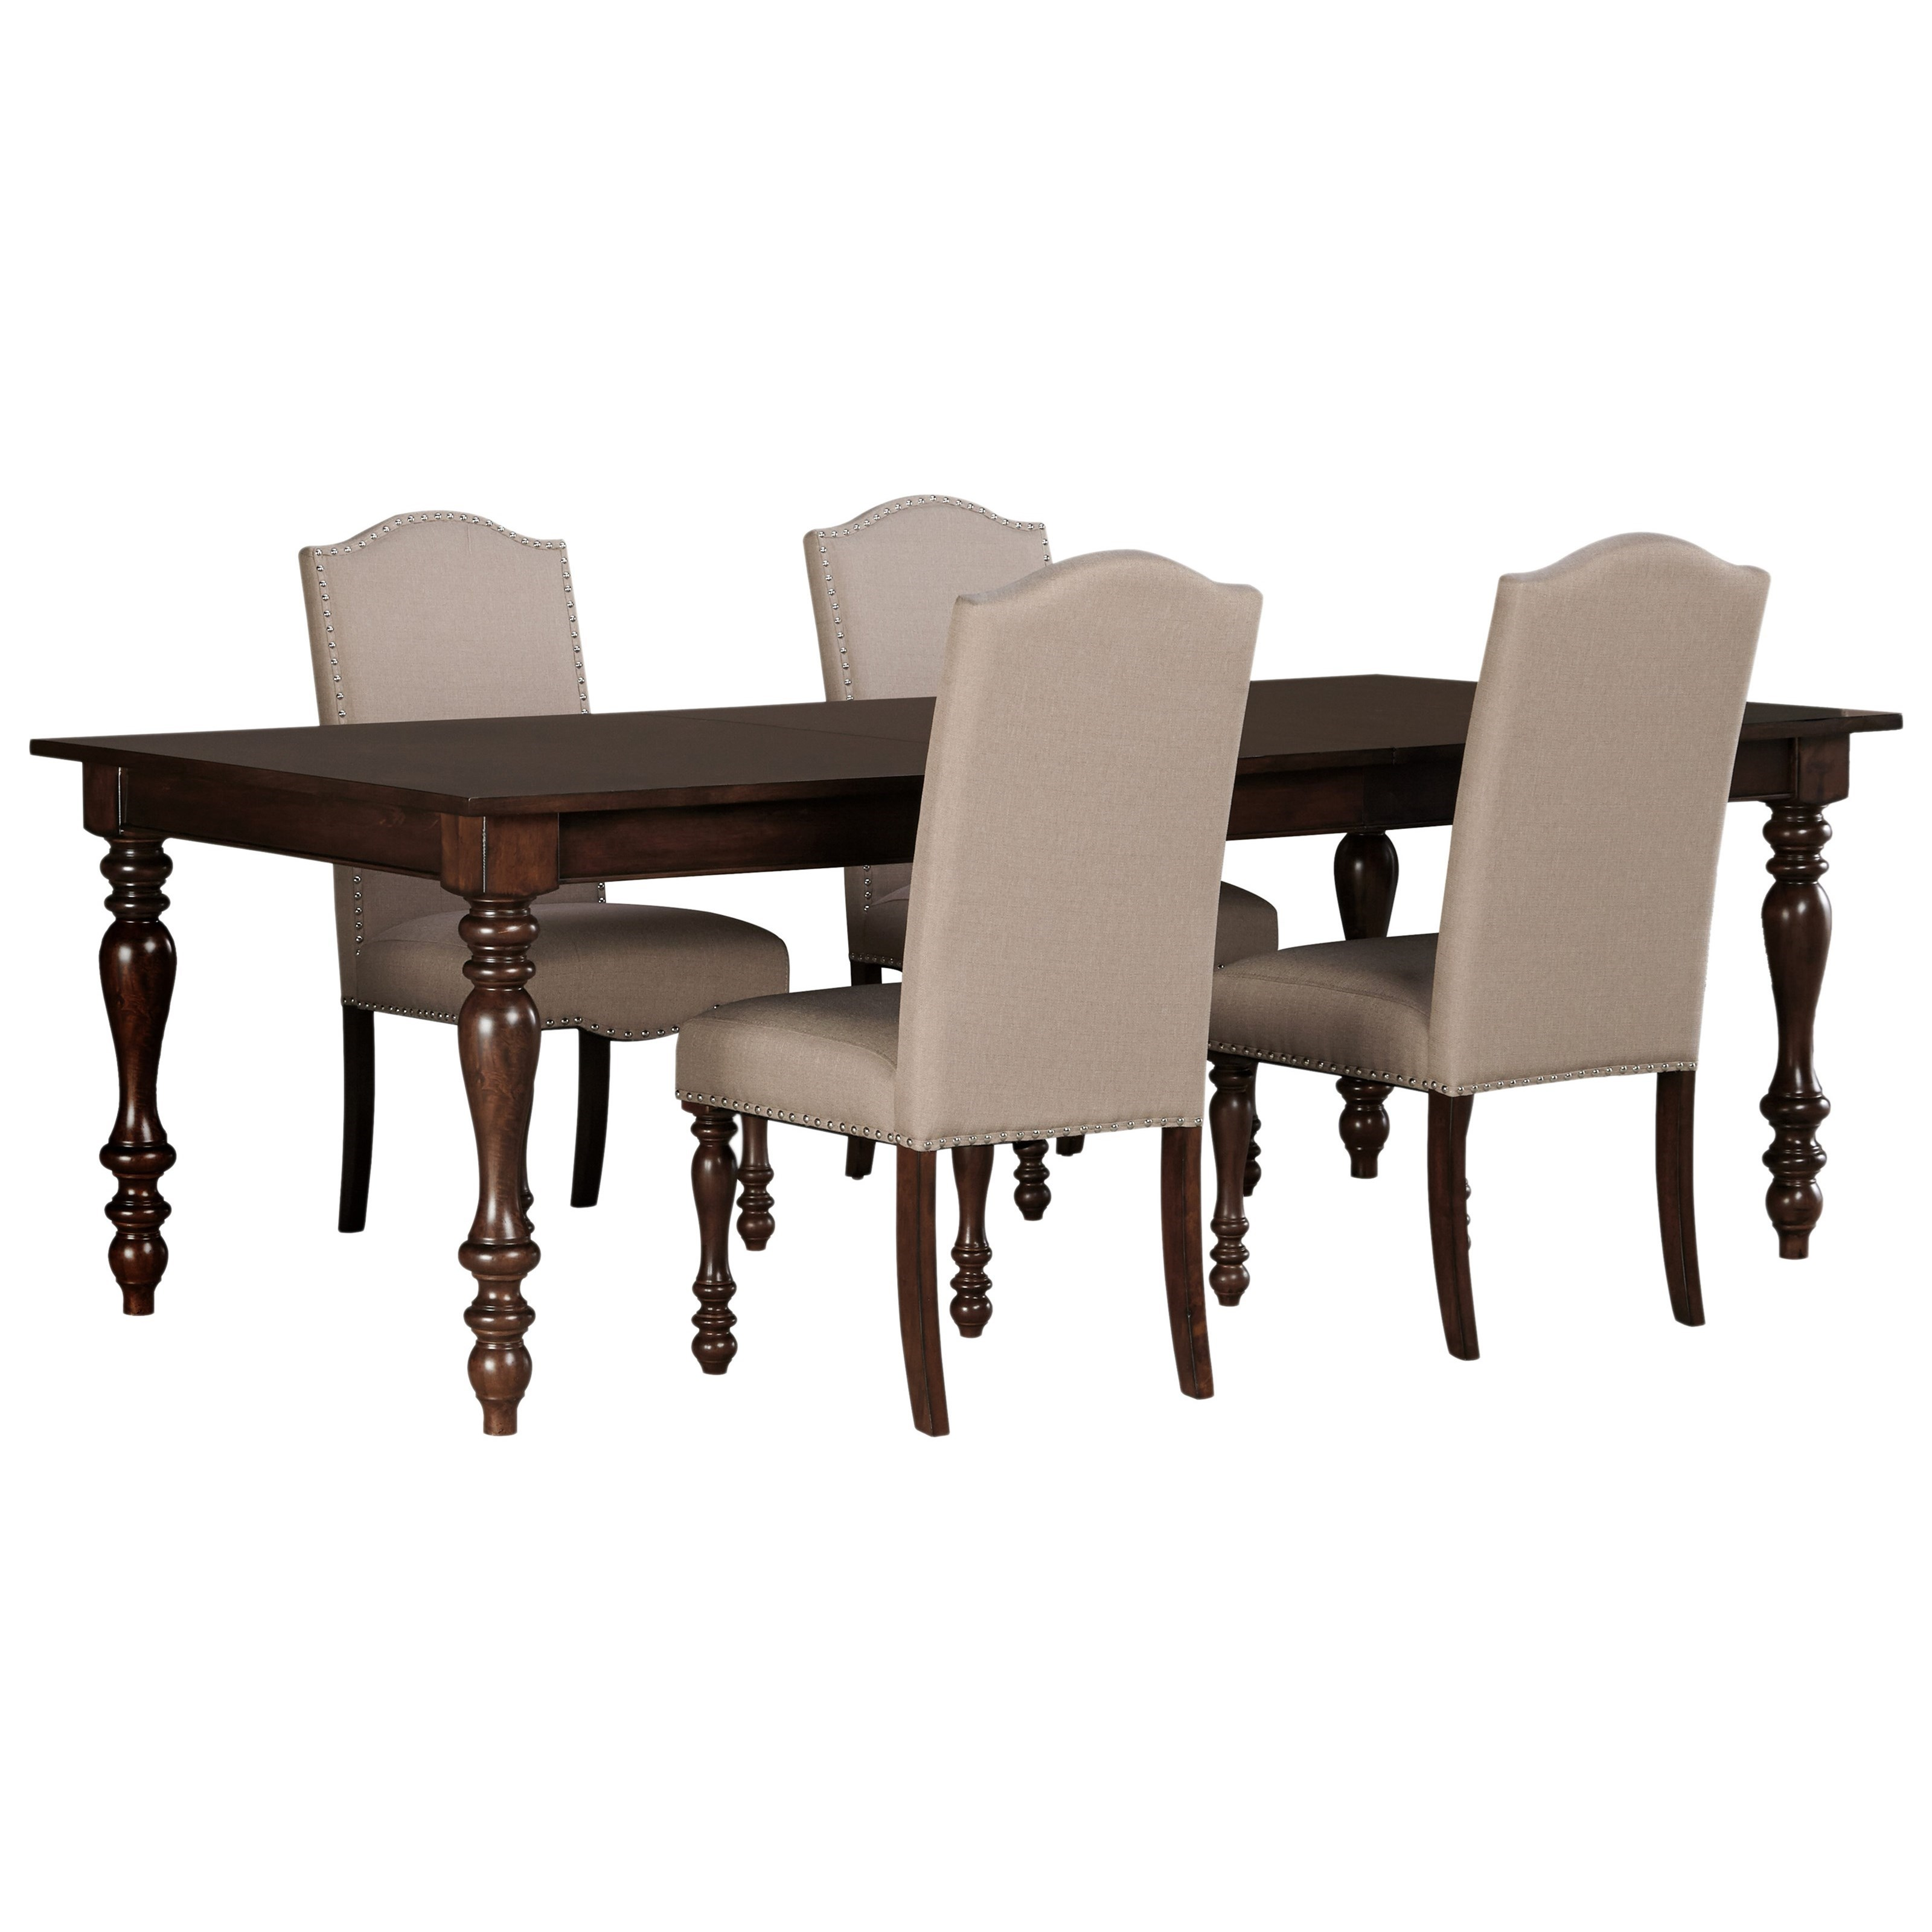 Signature Design by Ashley Baxenburg 5-Piece Dining Room Extension Table Set - Item Number: D506-35+4x01